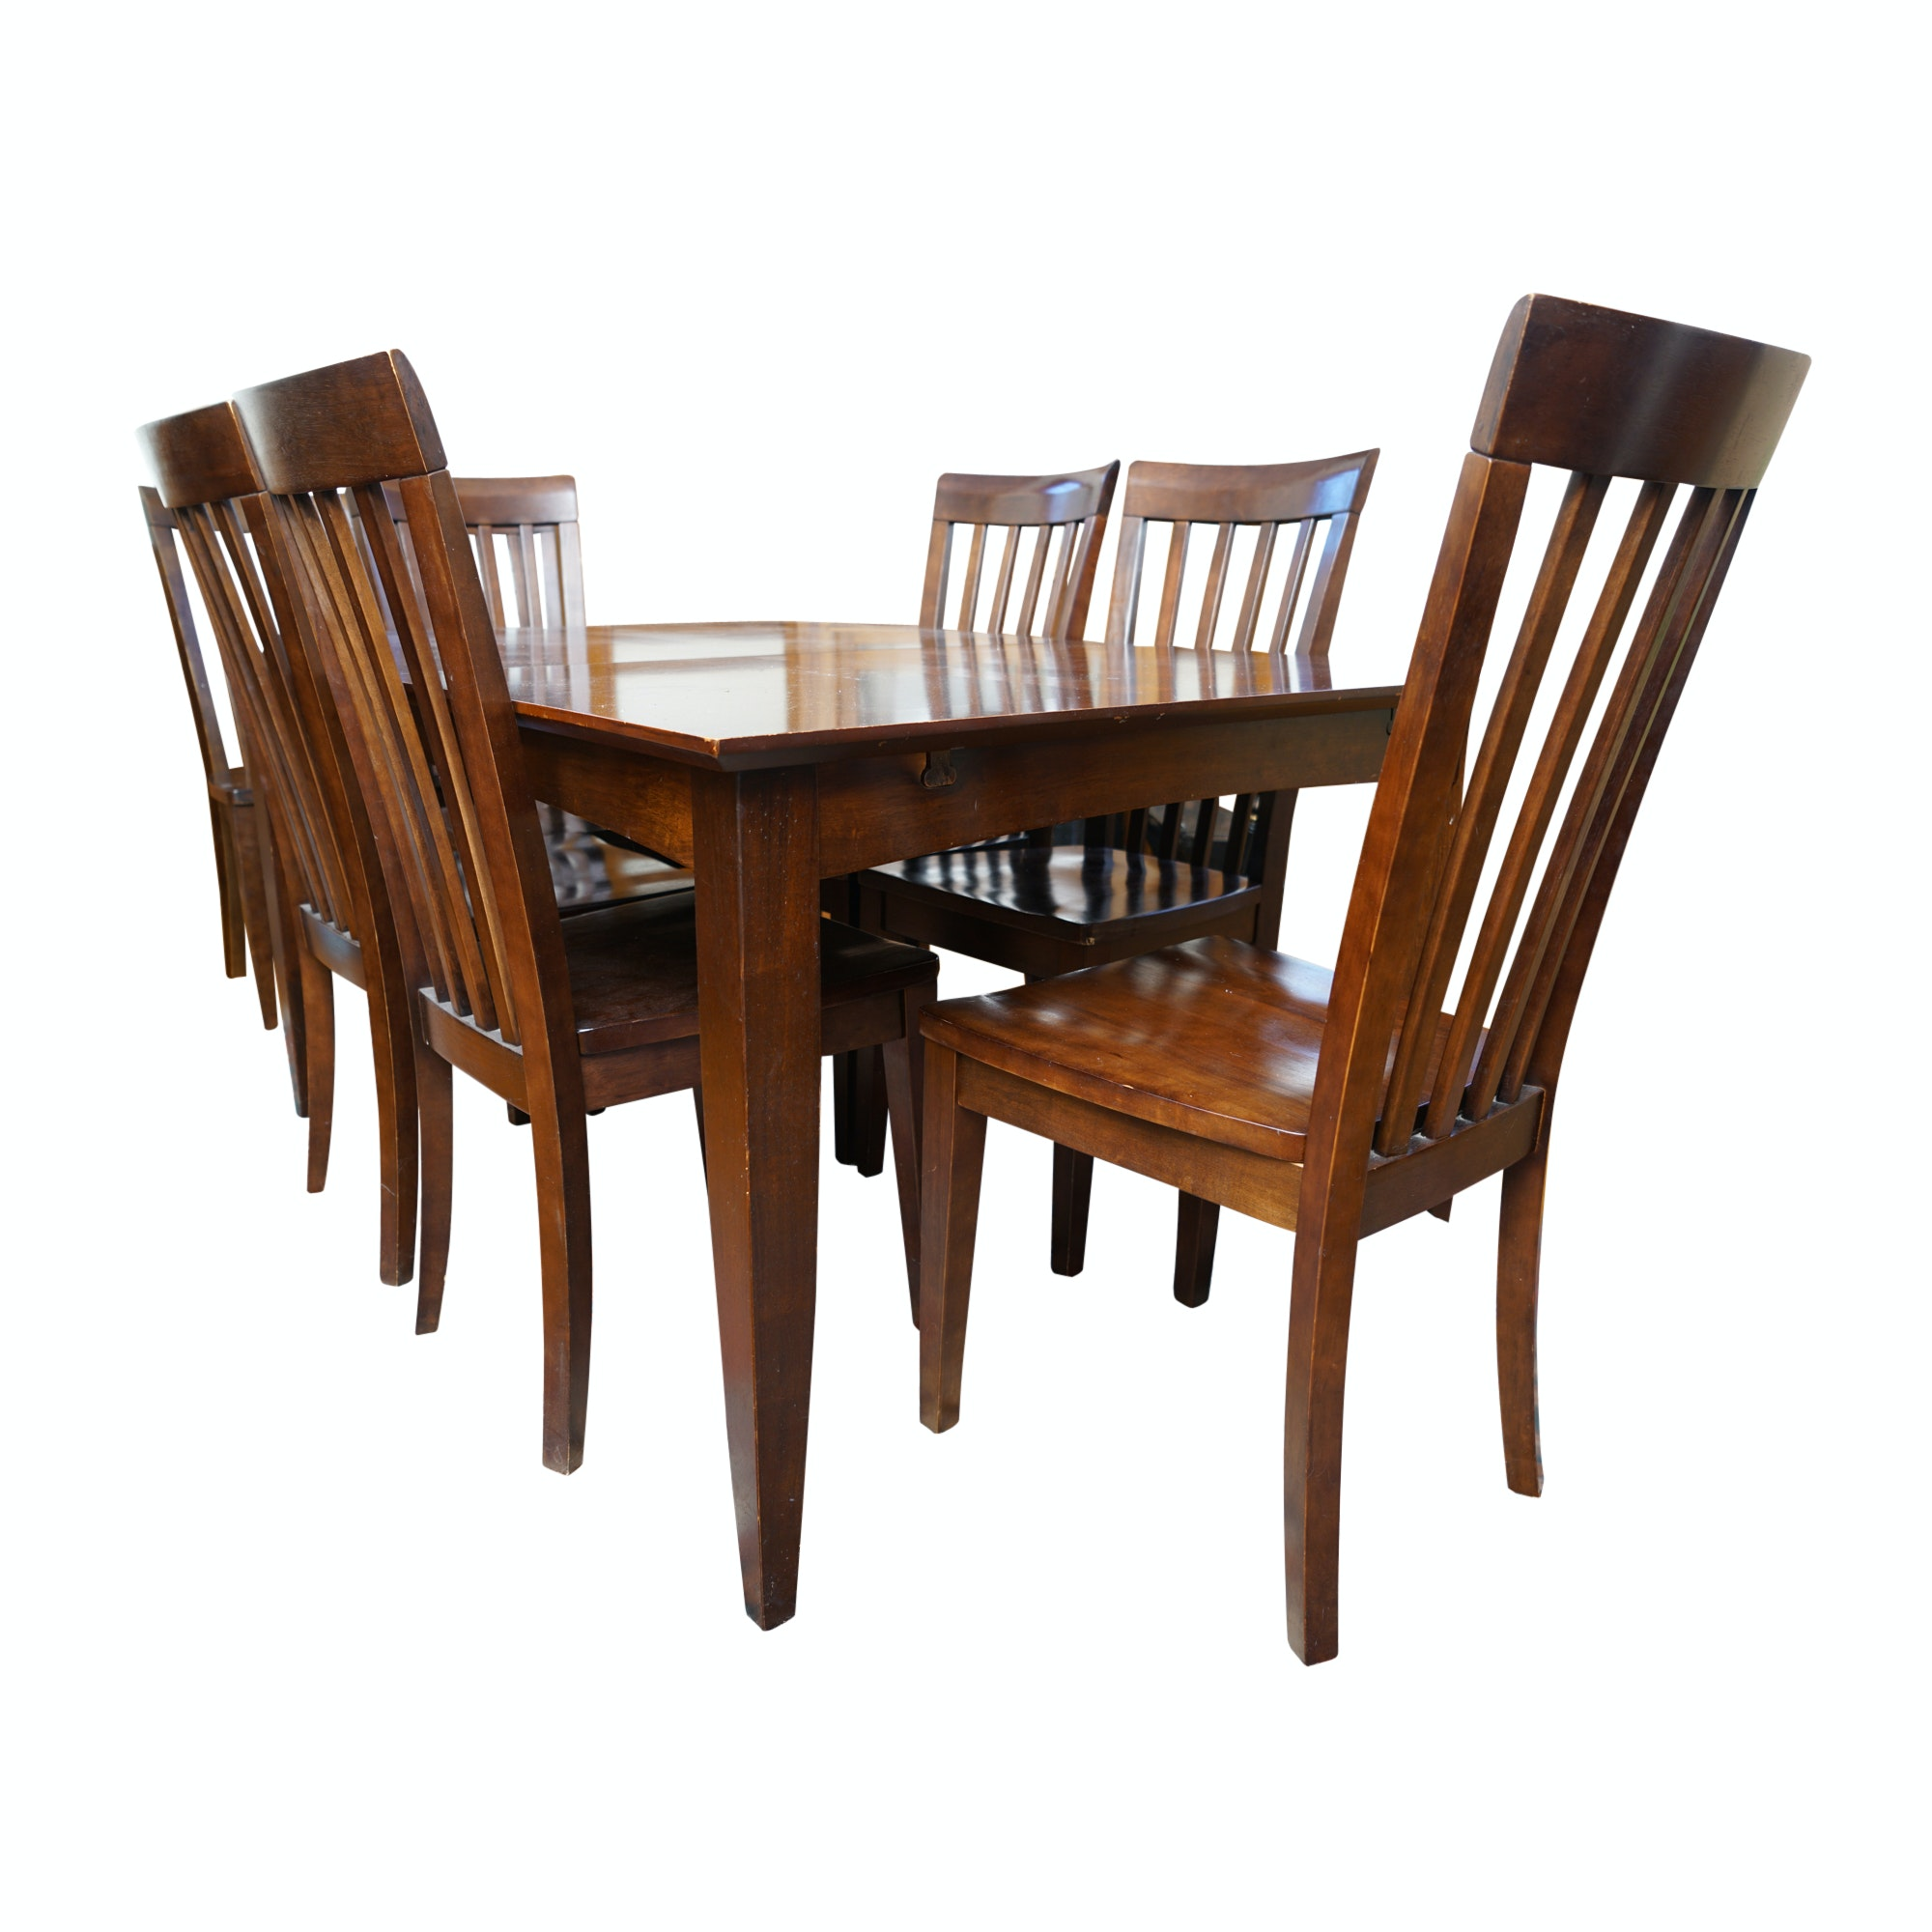 Contemporary Parquetry Extension Dining Table with Side Chairs